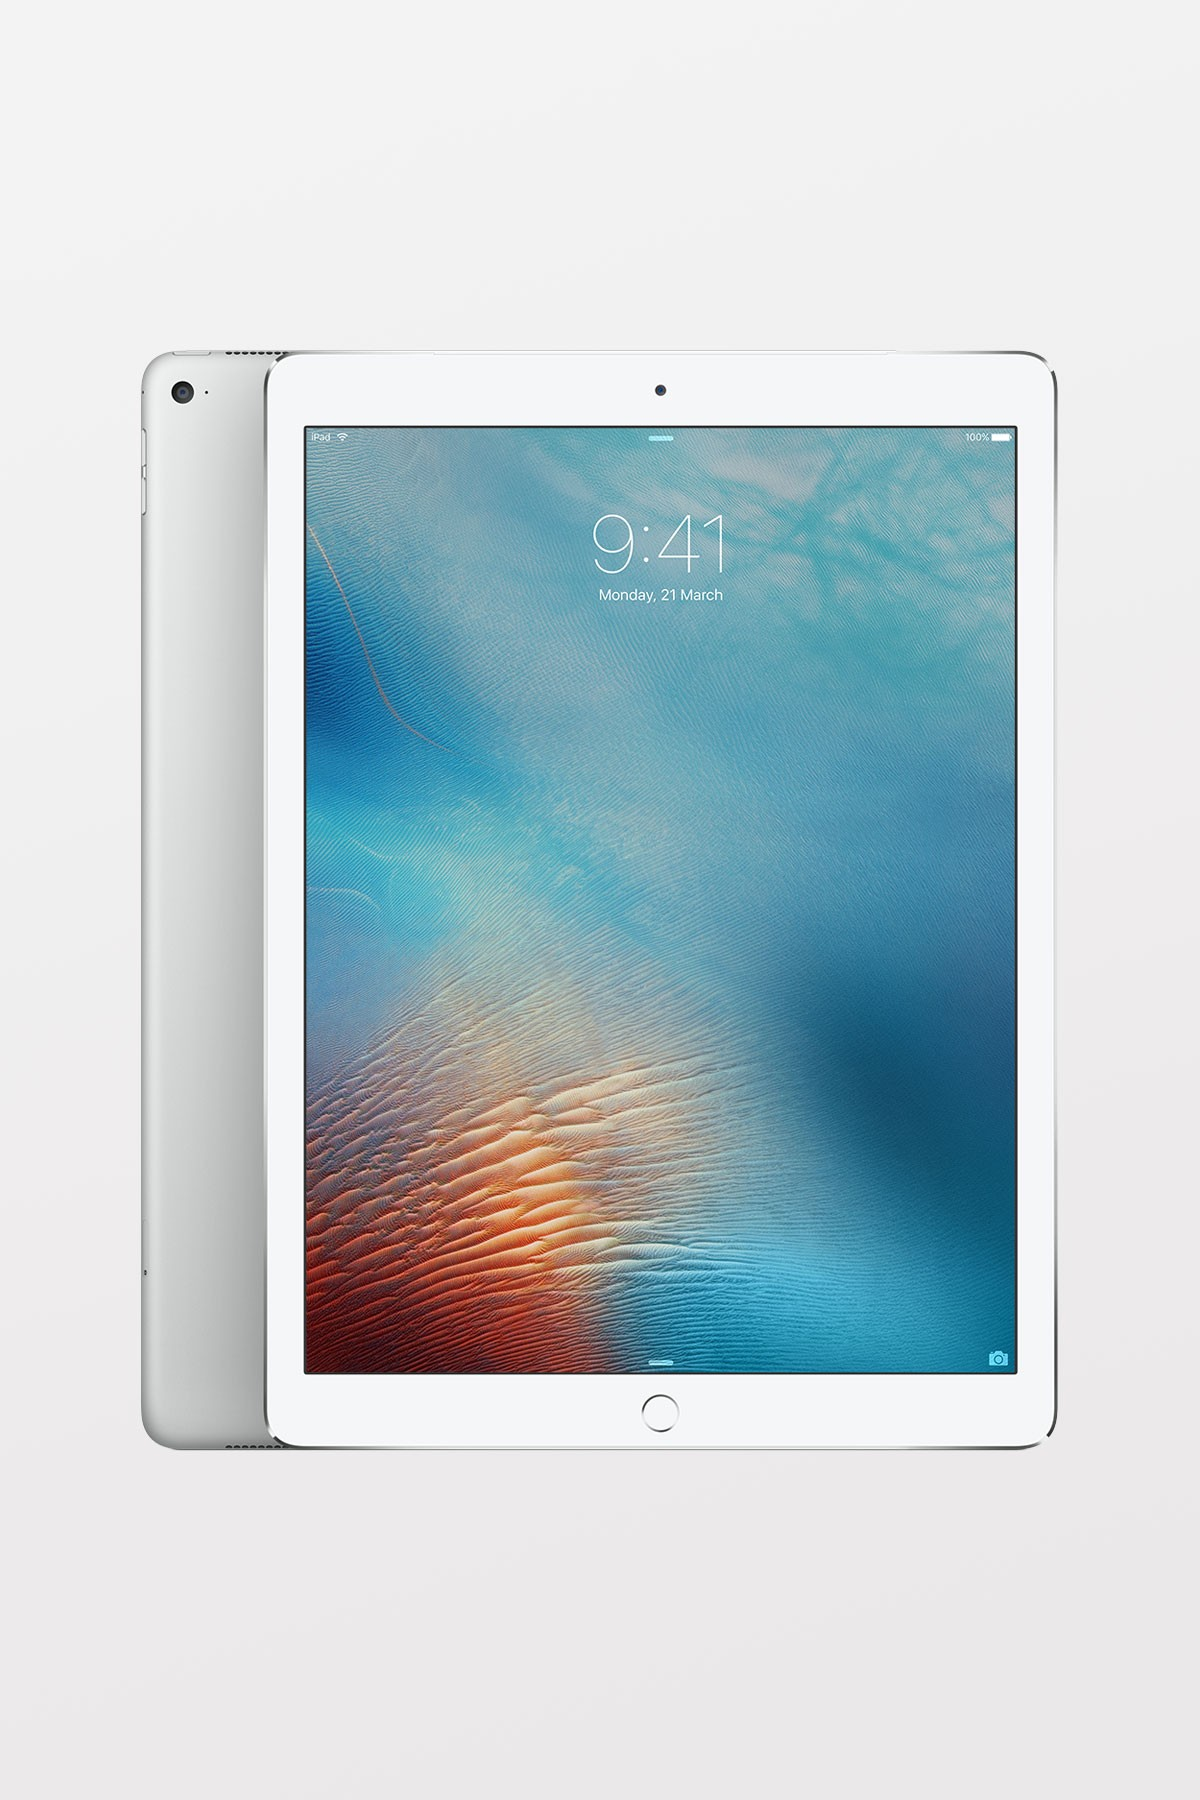 Apple iPad Pro 12.9-inch Wi-Fi 32GB - Silver - Refurbished